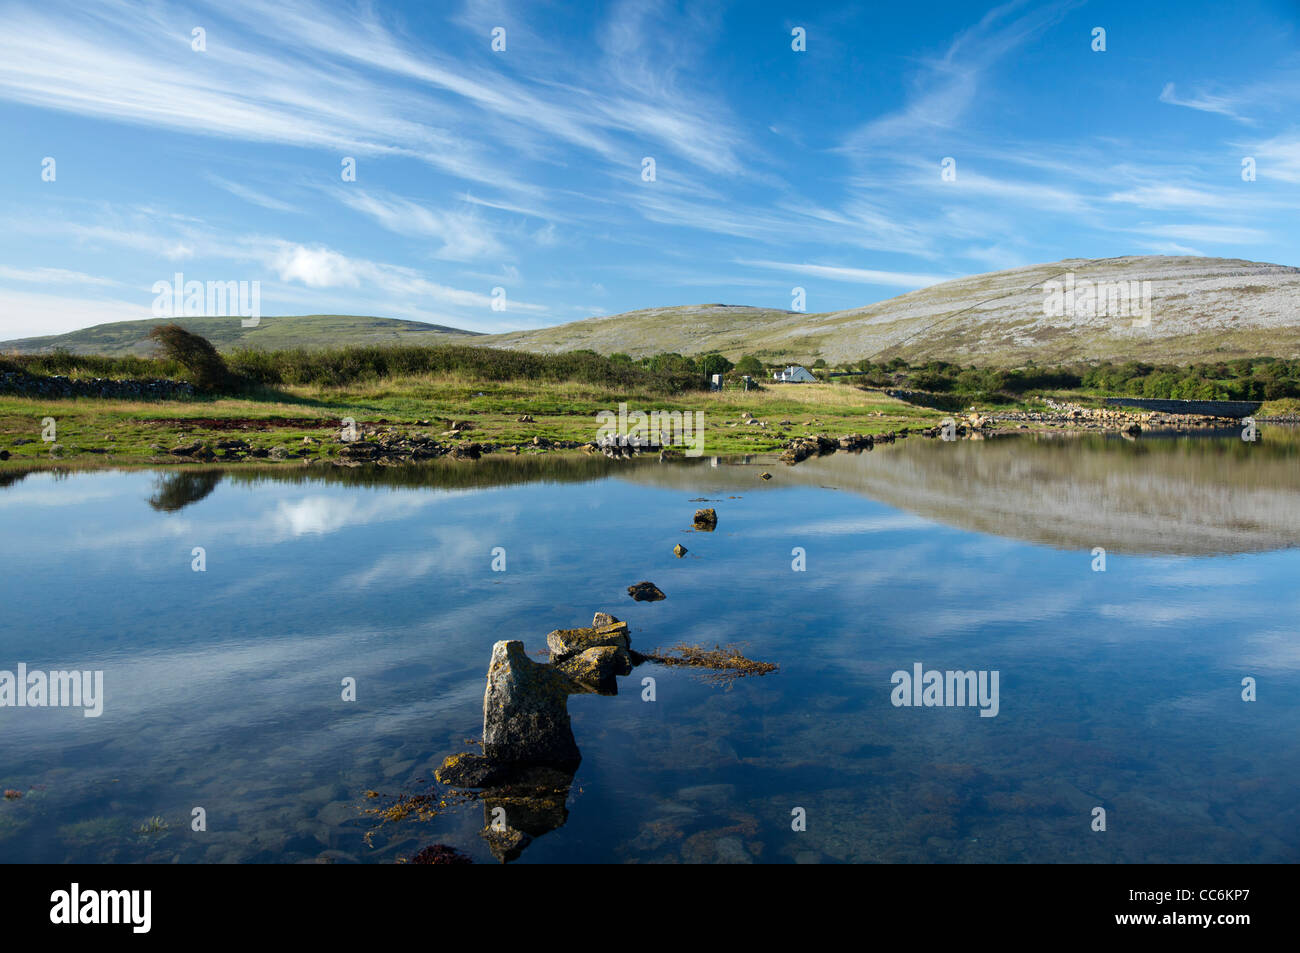 The limestone landscape of The Burren reflected in Ballyvaughan Bay, County Clare, Ireland. Stock Photo